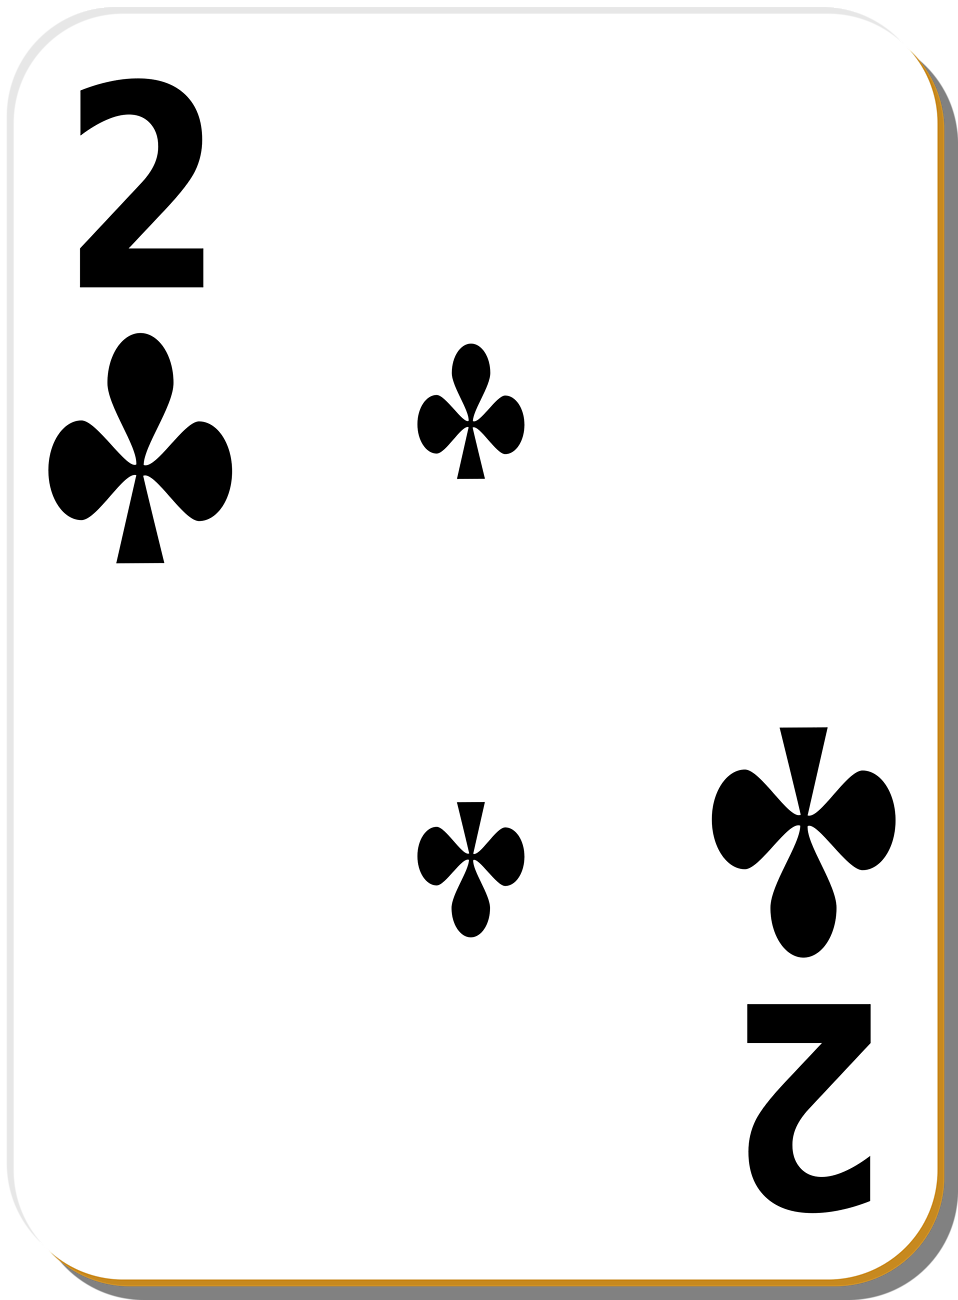 Illustration of a Two of Clubs playing card : Free Stock Photo